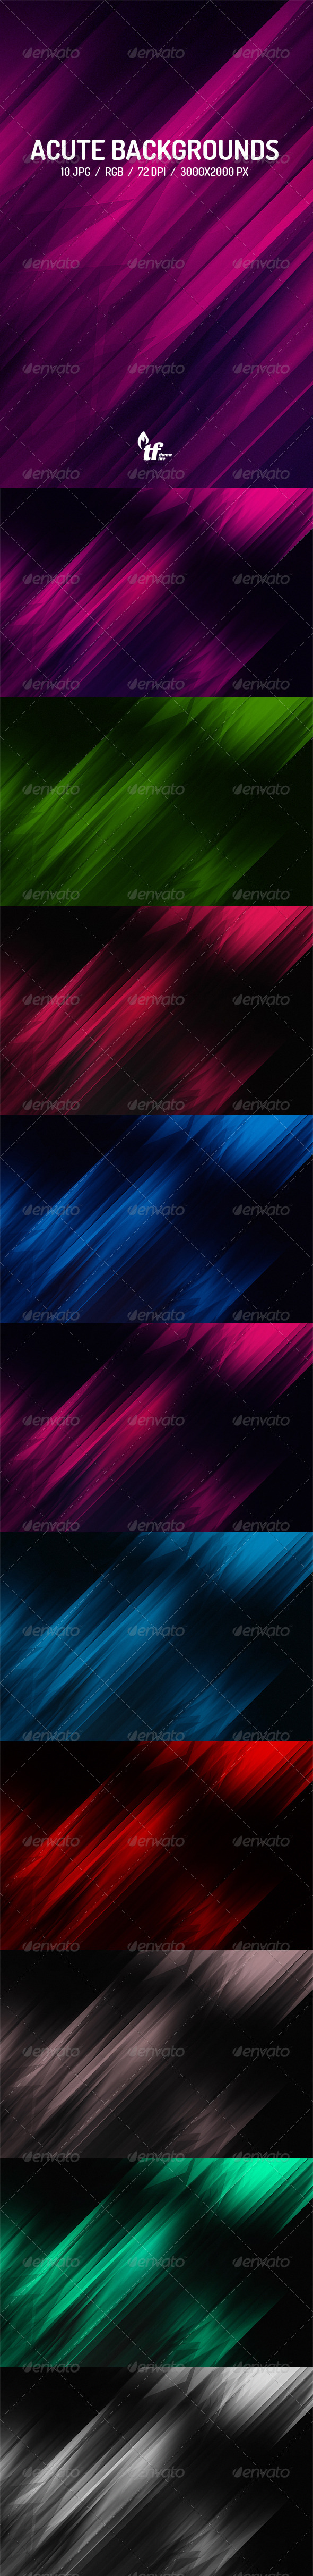 GraphicRiver Acute Backgrounds 7645962